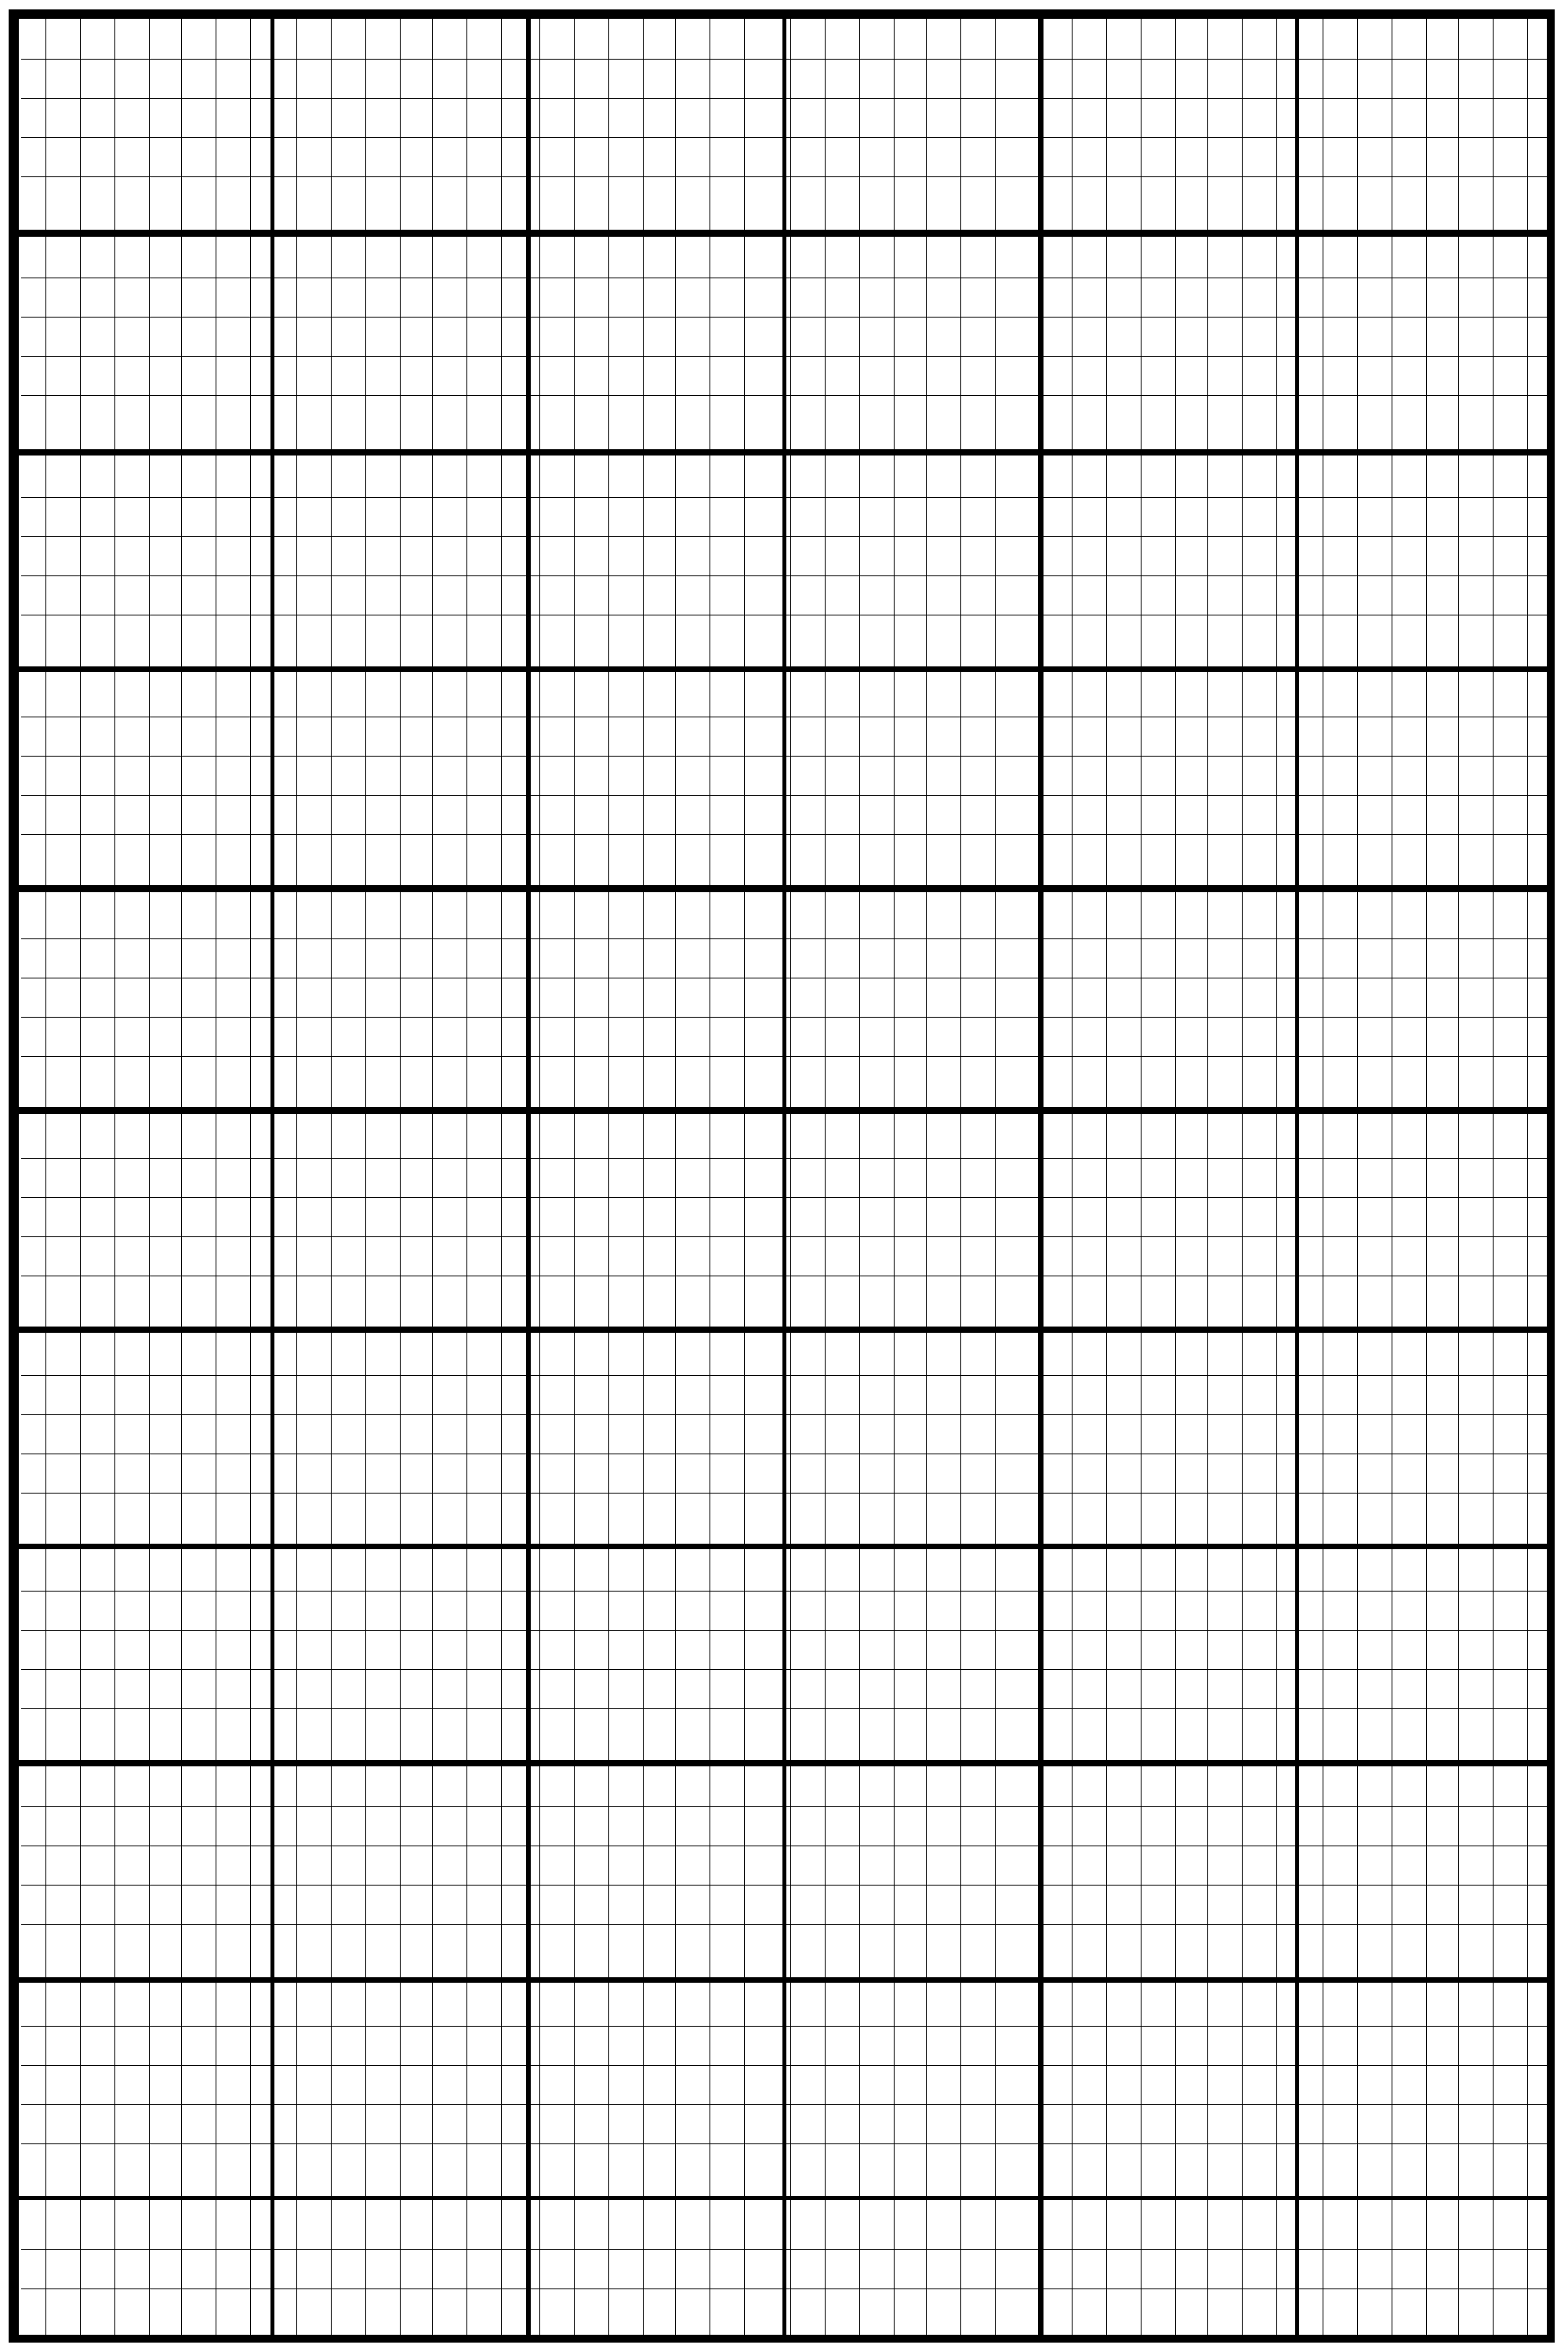 photo regarding Printable Knitting Graph Paper titled Cost-free Printable Knitting Graph Paper Templates Absolutely free Graph